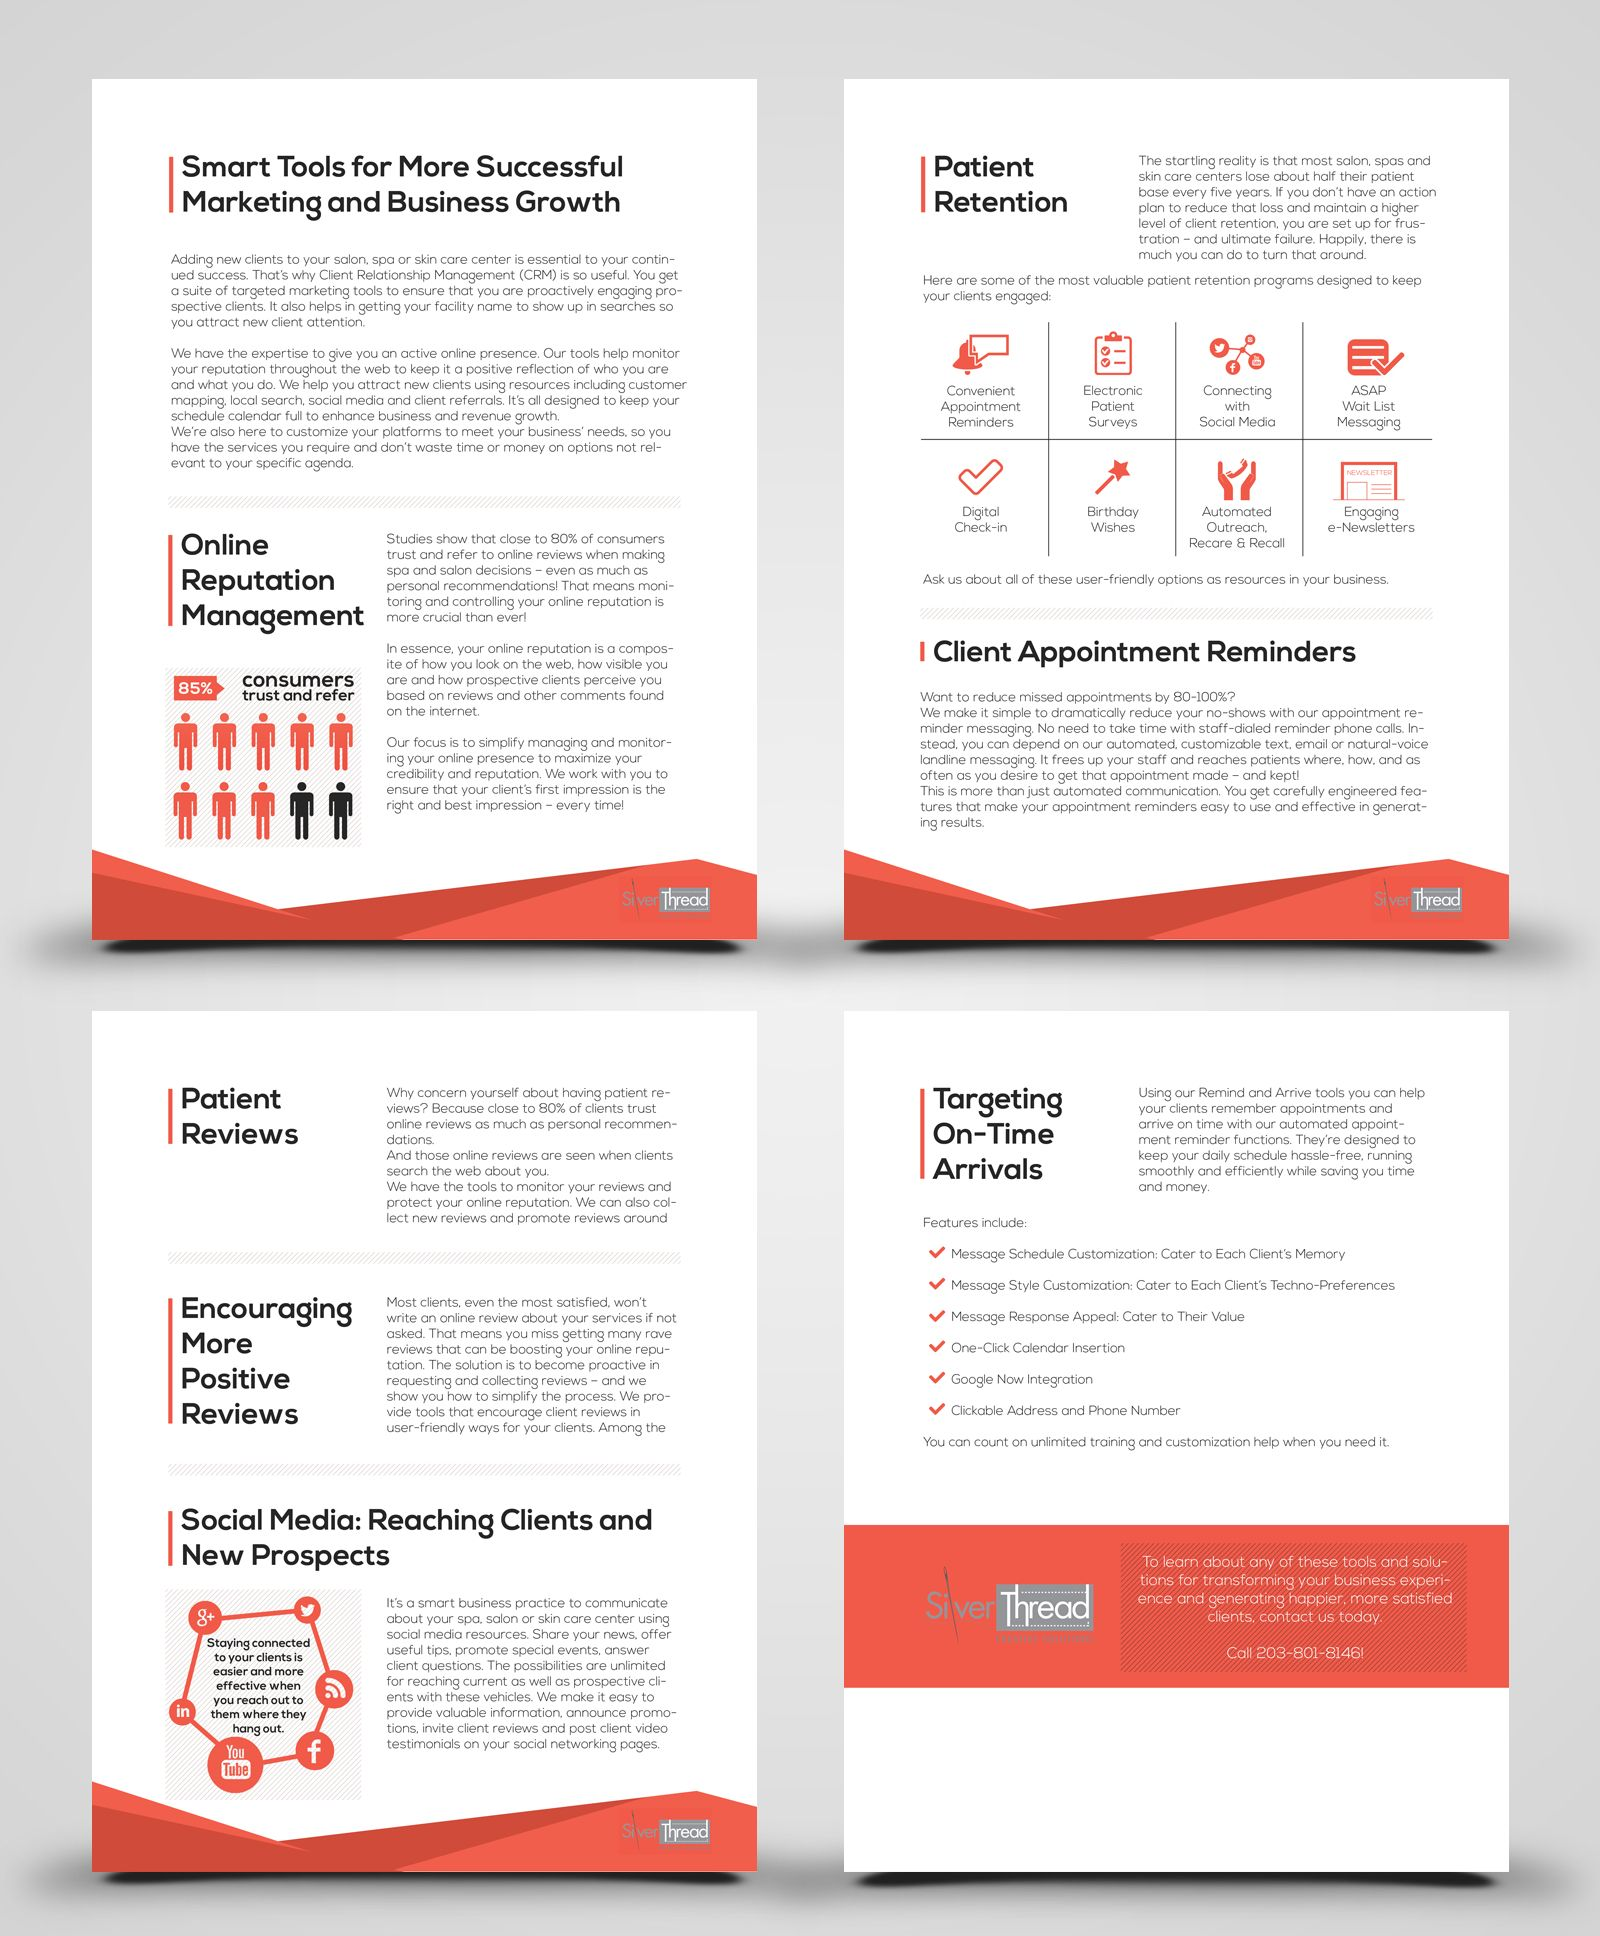 The Stunning Pincassie Mascarenhas On Adverts Case Study Design With White Paper Report Template Picture B Case Study Design Paper Layout Design Ebook Design